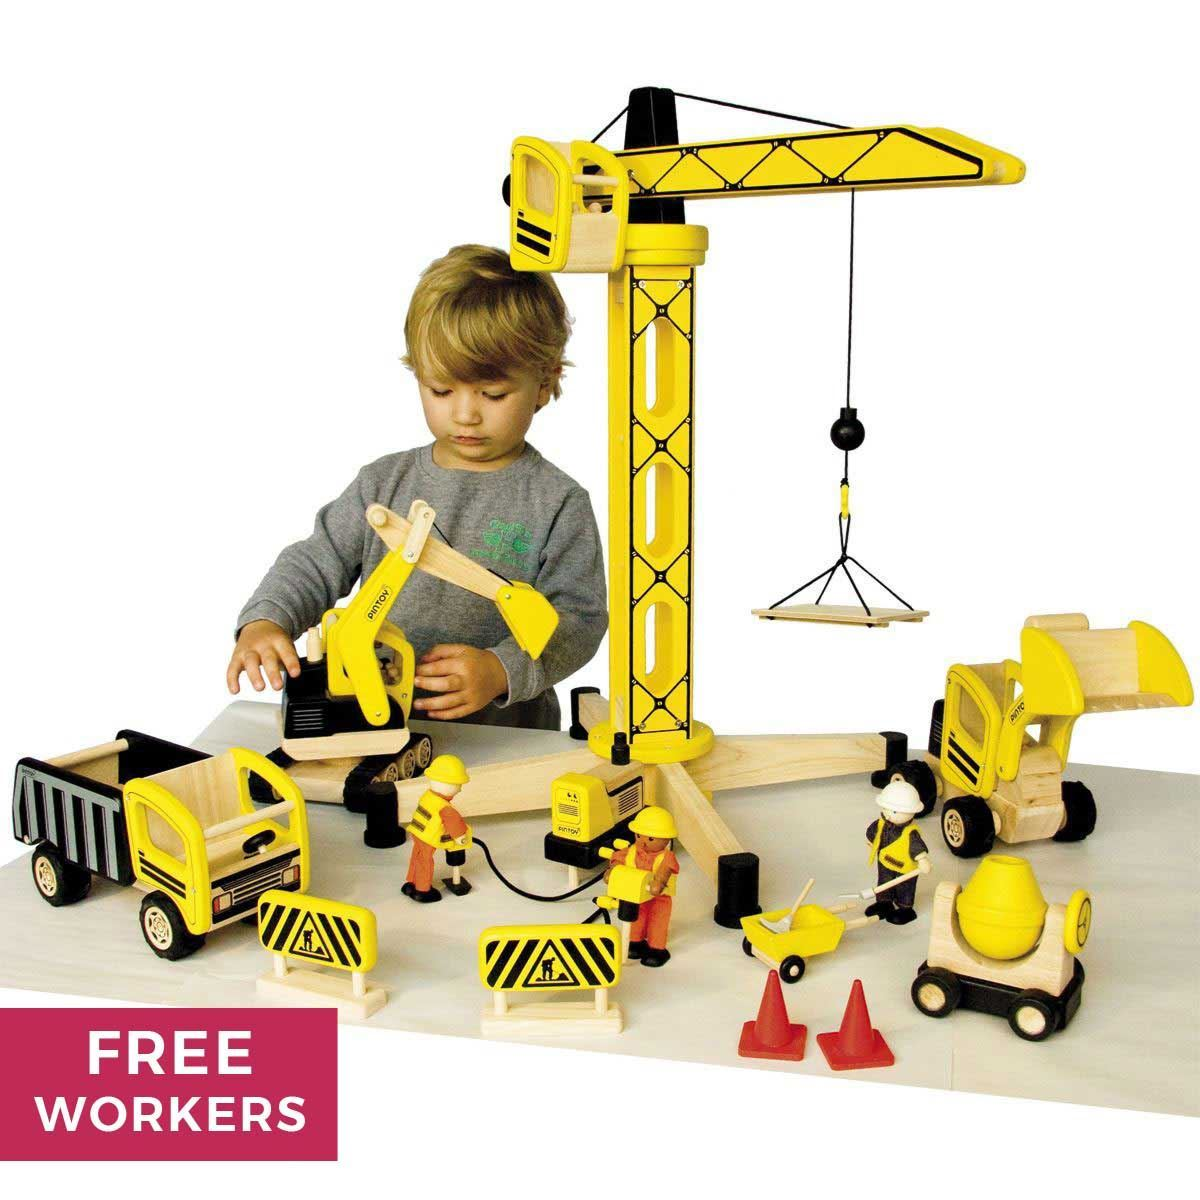 Construction Site Toys : Construction site special offer bundle pin toy